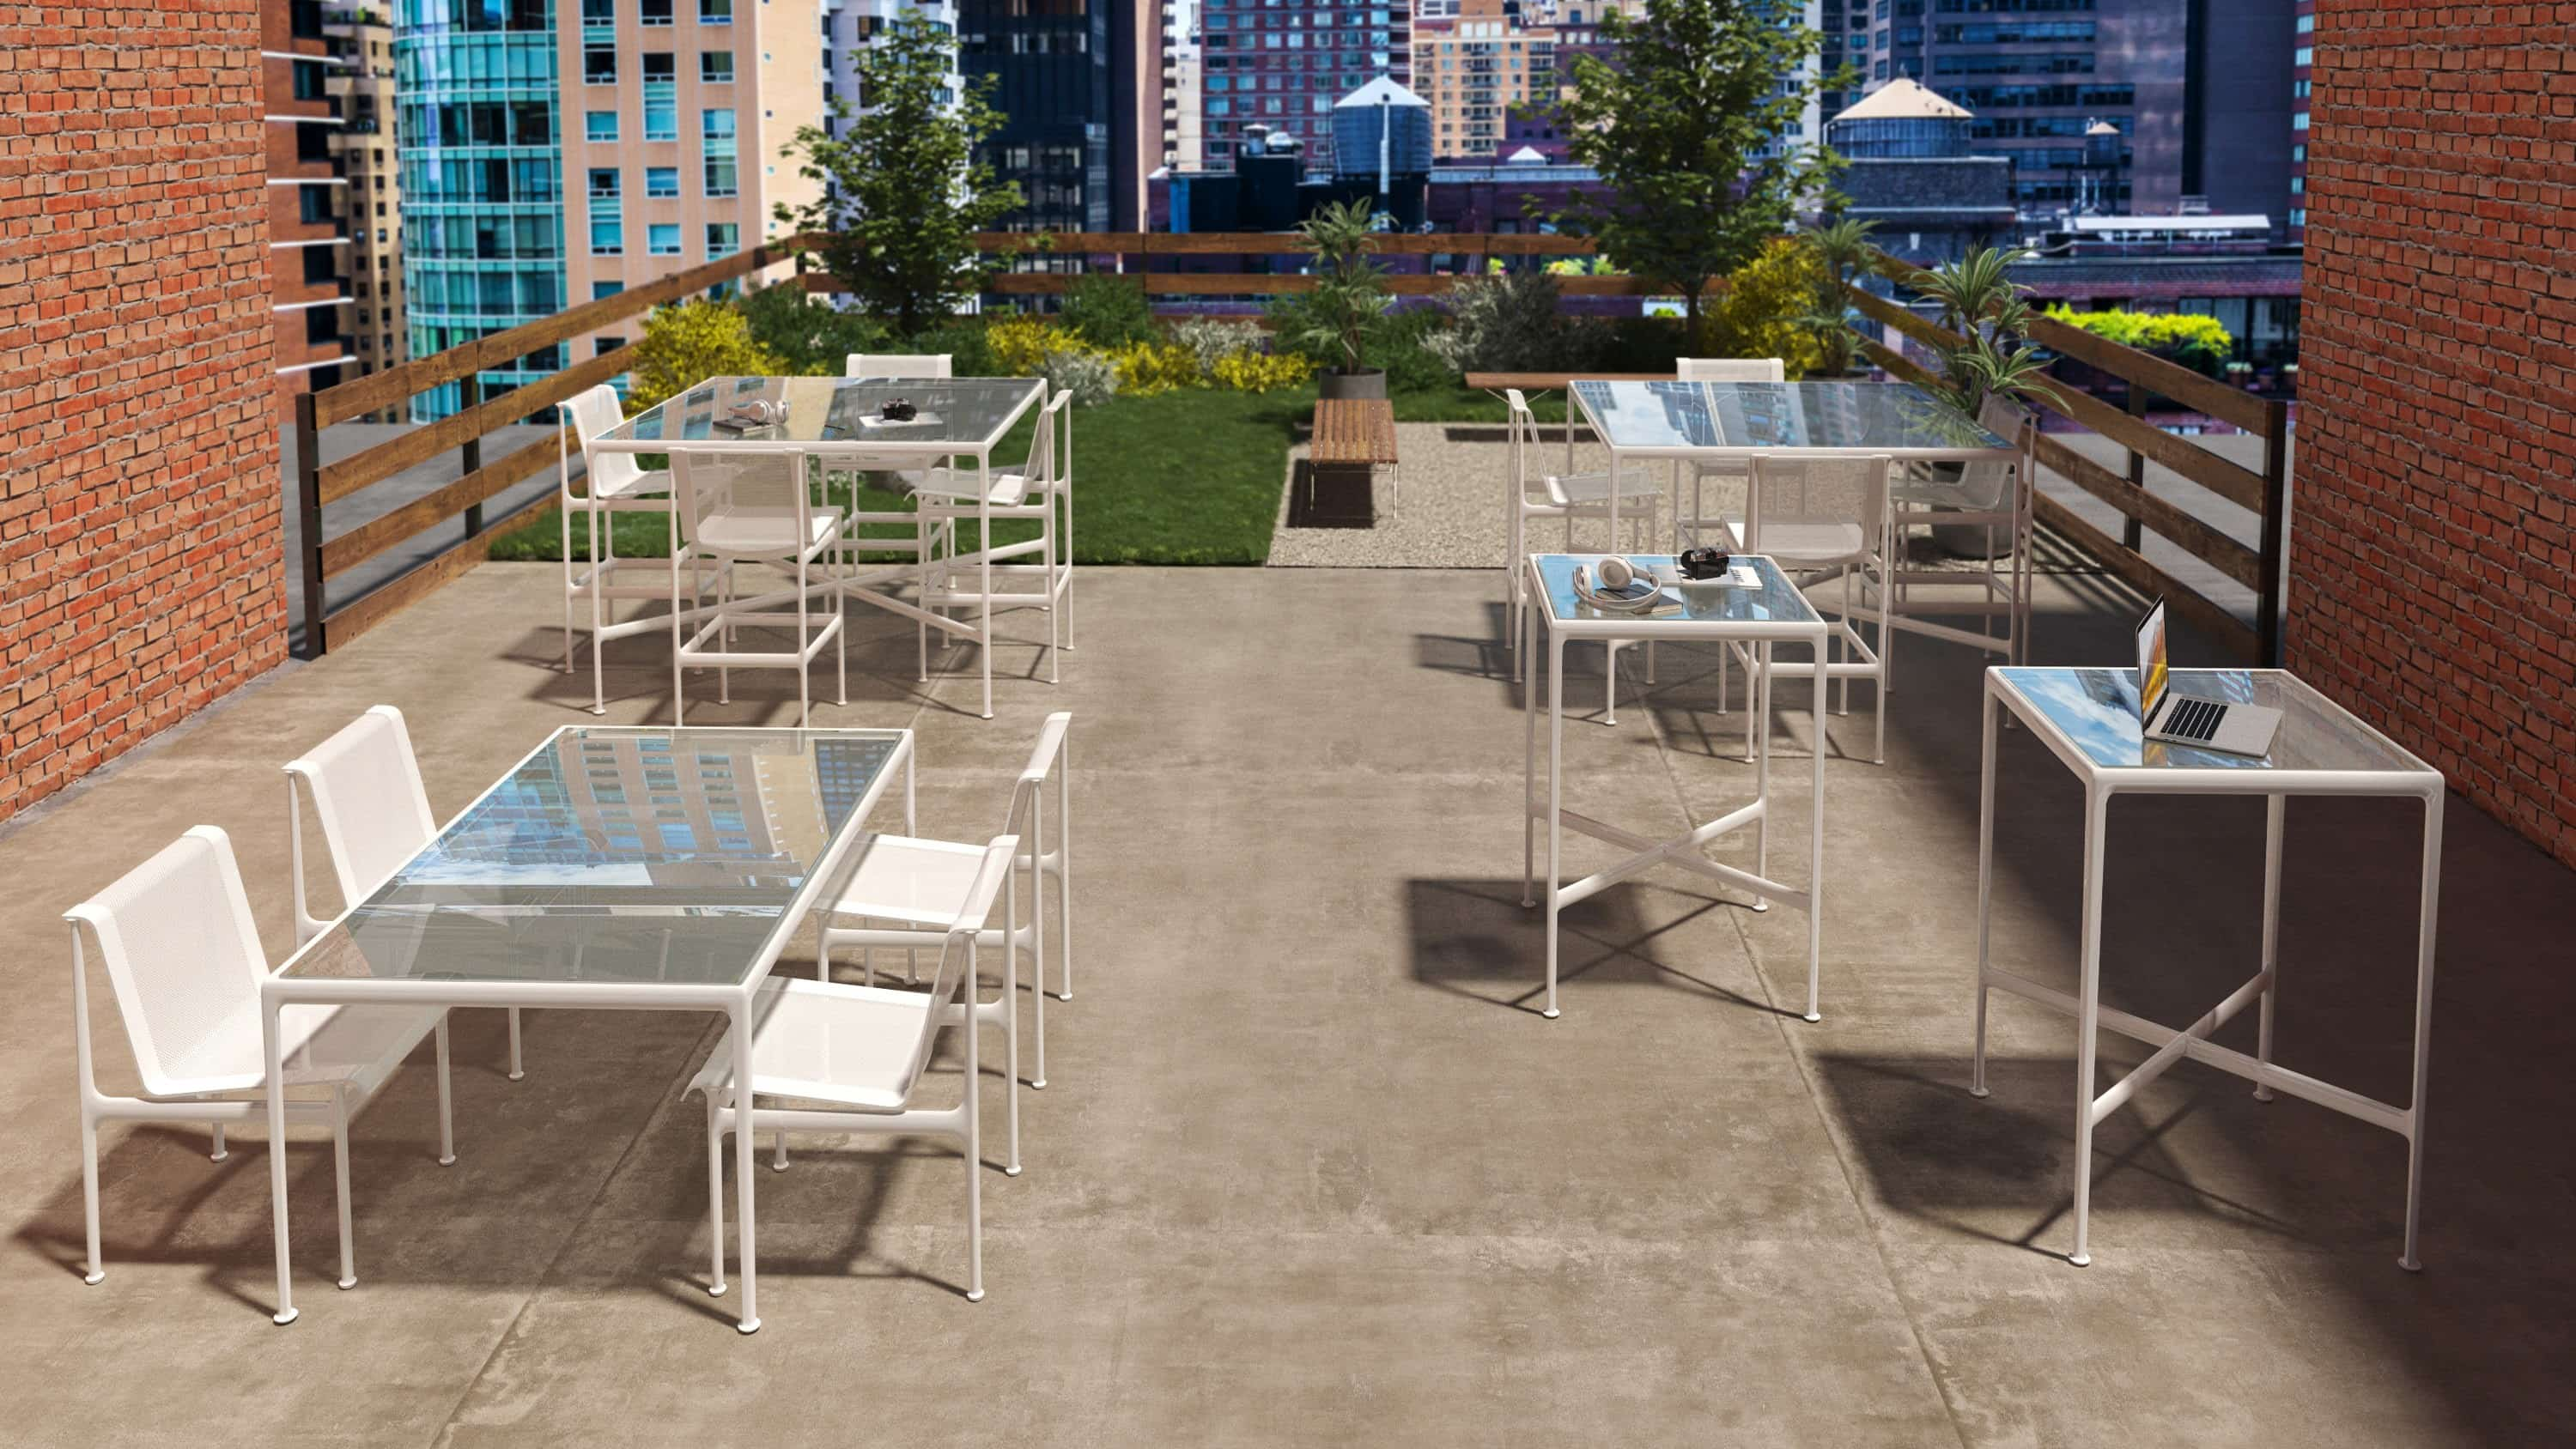 Outdoor patio with greenery, tables, and white chairs on a rooftop